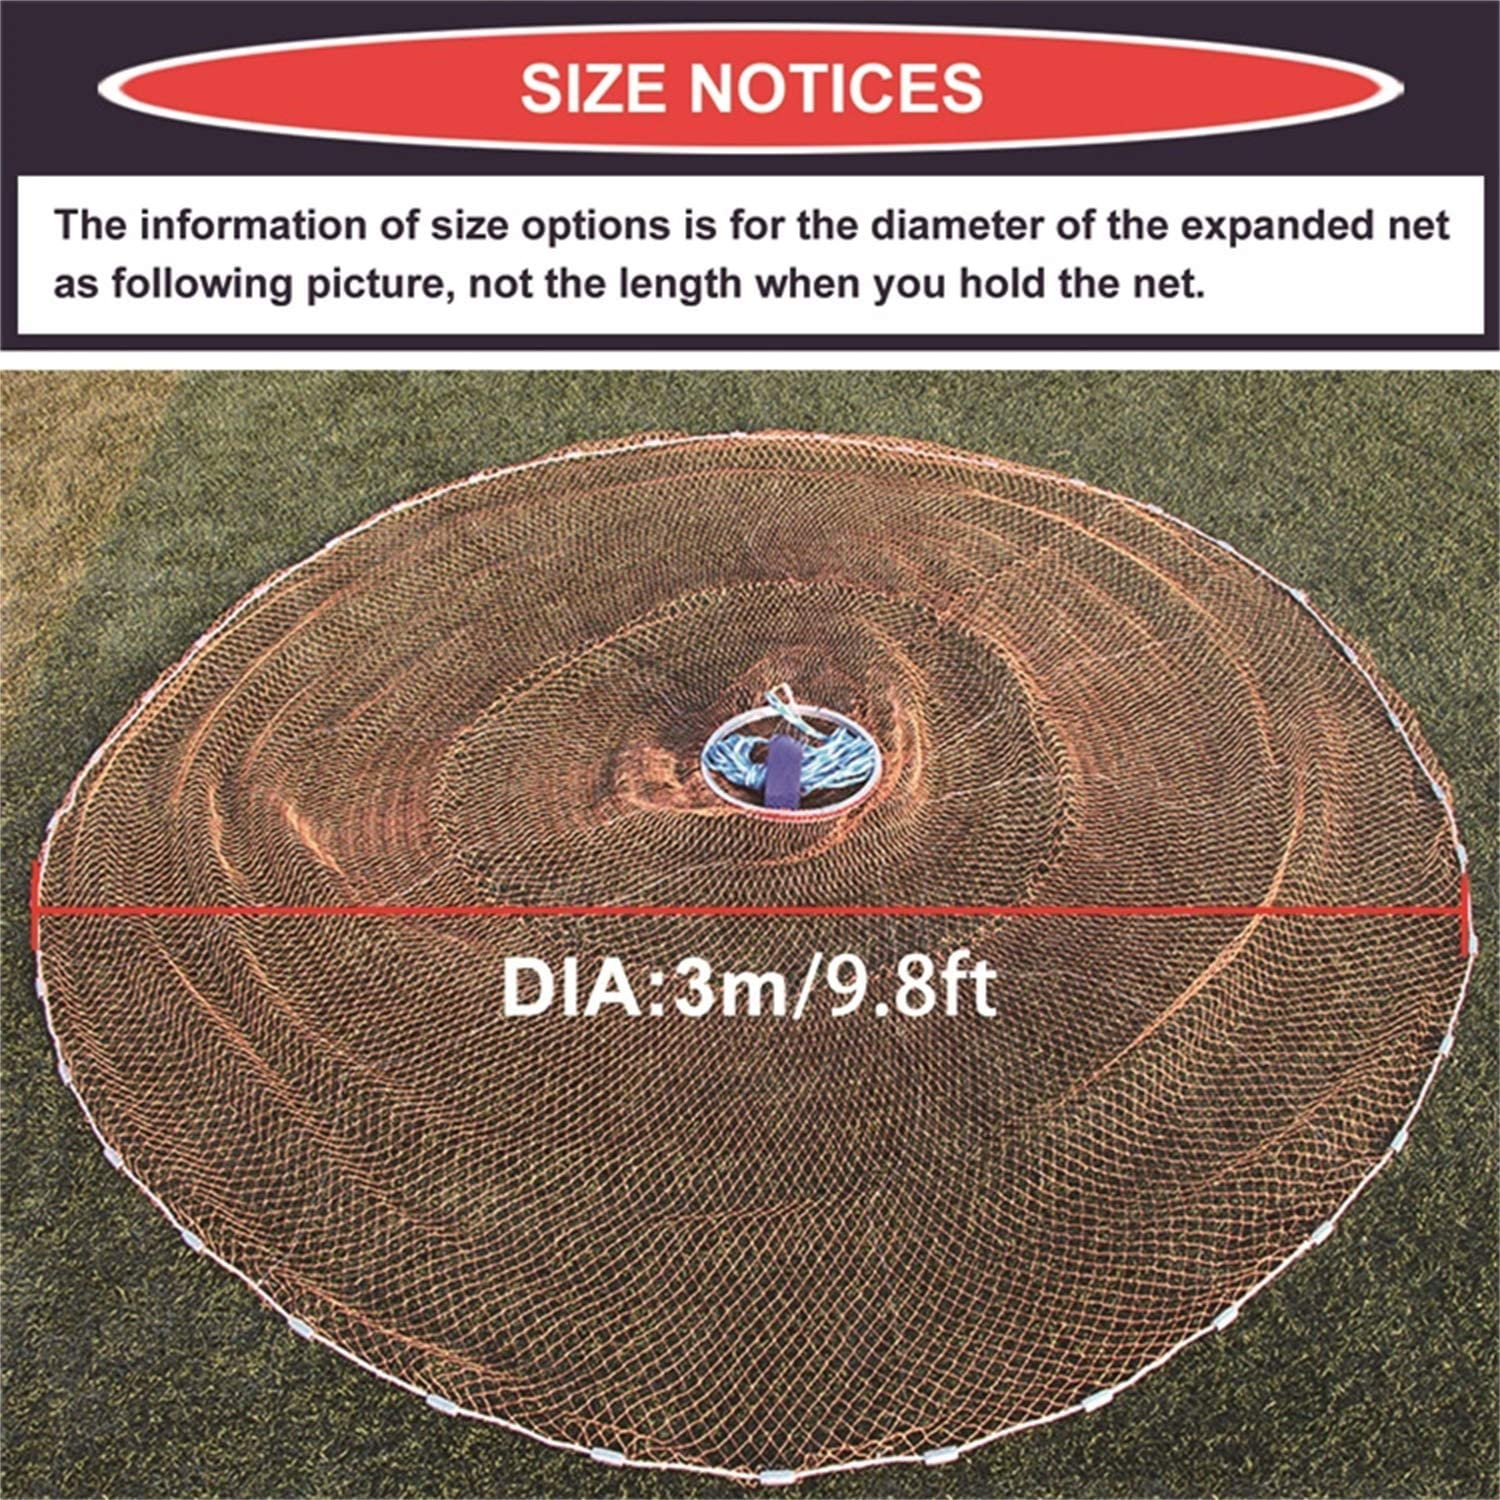 0.8inch Mesh Size EASY BIG American Fishing Cast Net with Aluminum Frisbee for Bait Trap Fish Dia:7.8ft//9.8ft//11.8ft//13.7ft